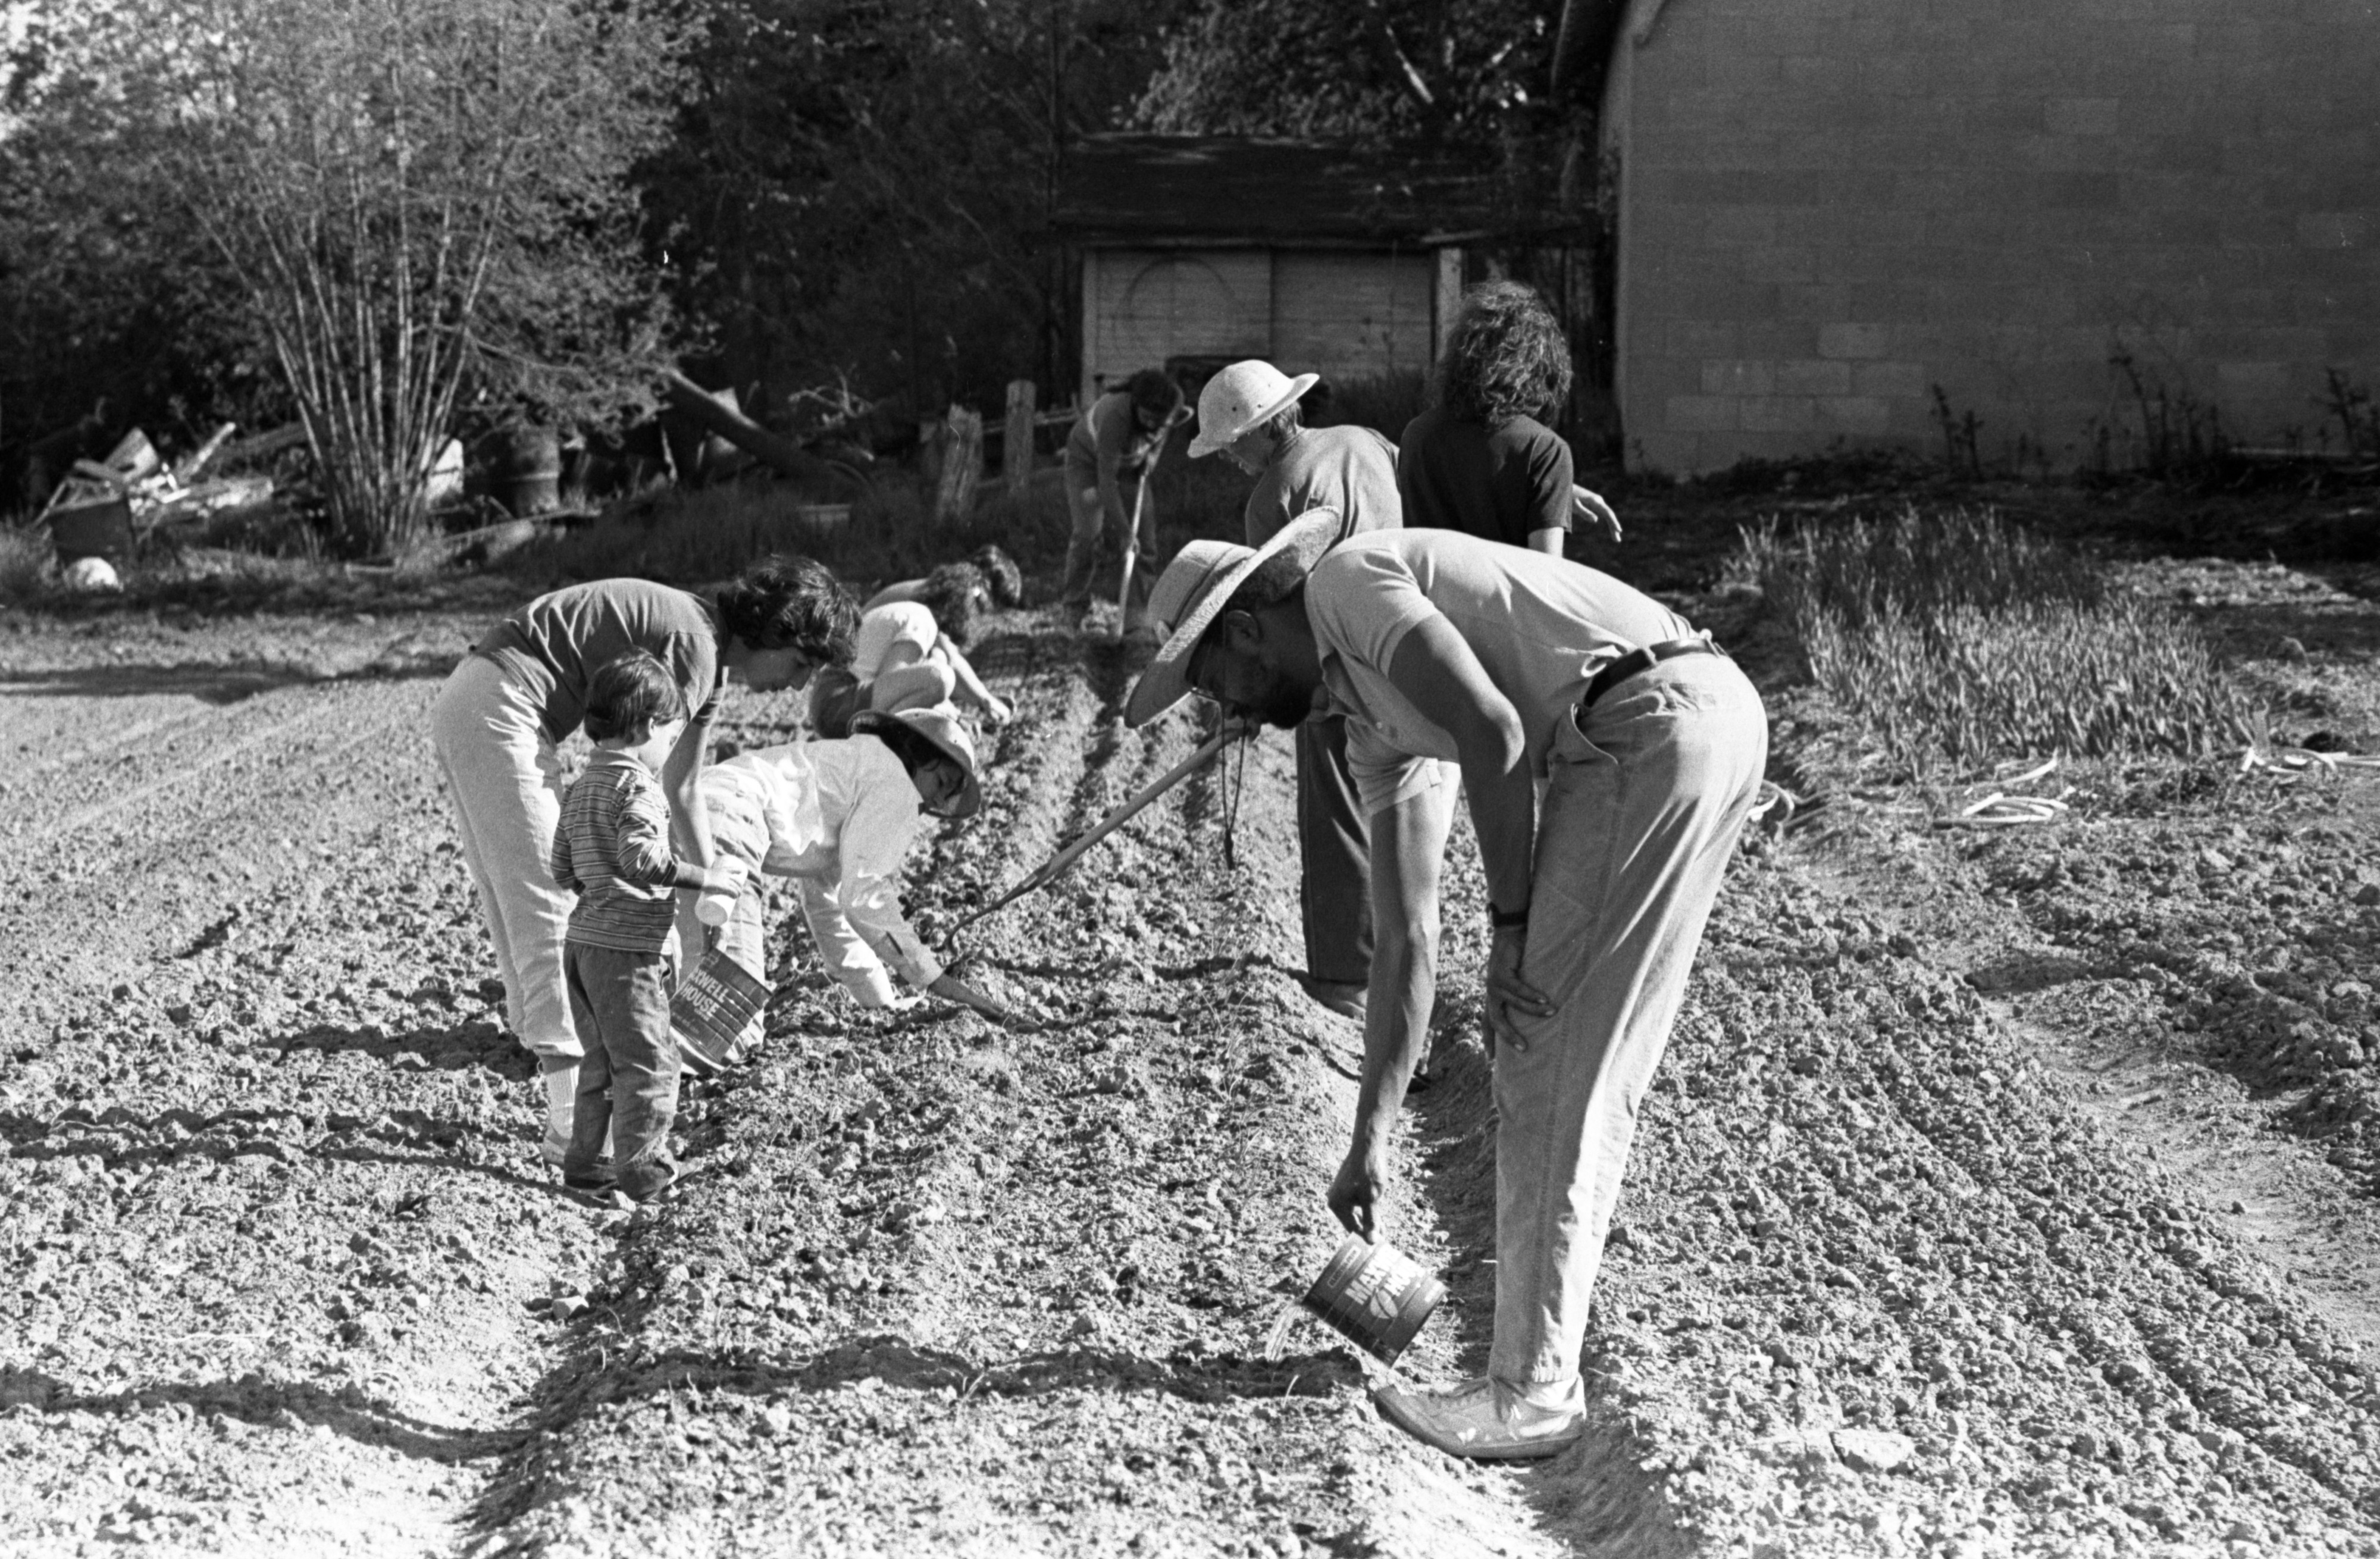 Planting At Community Farm, May 1988 image